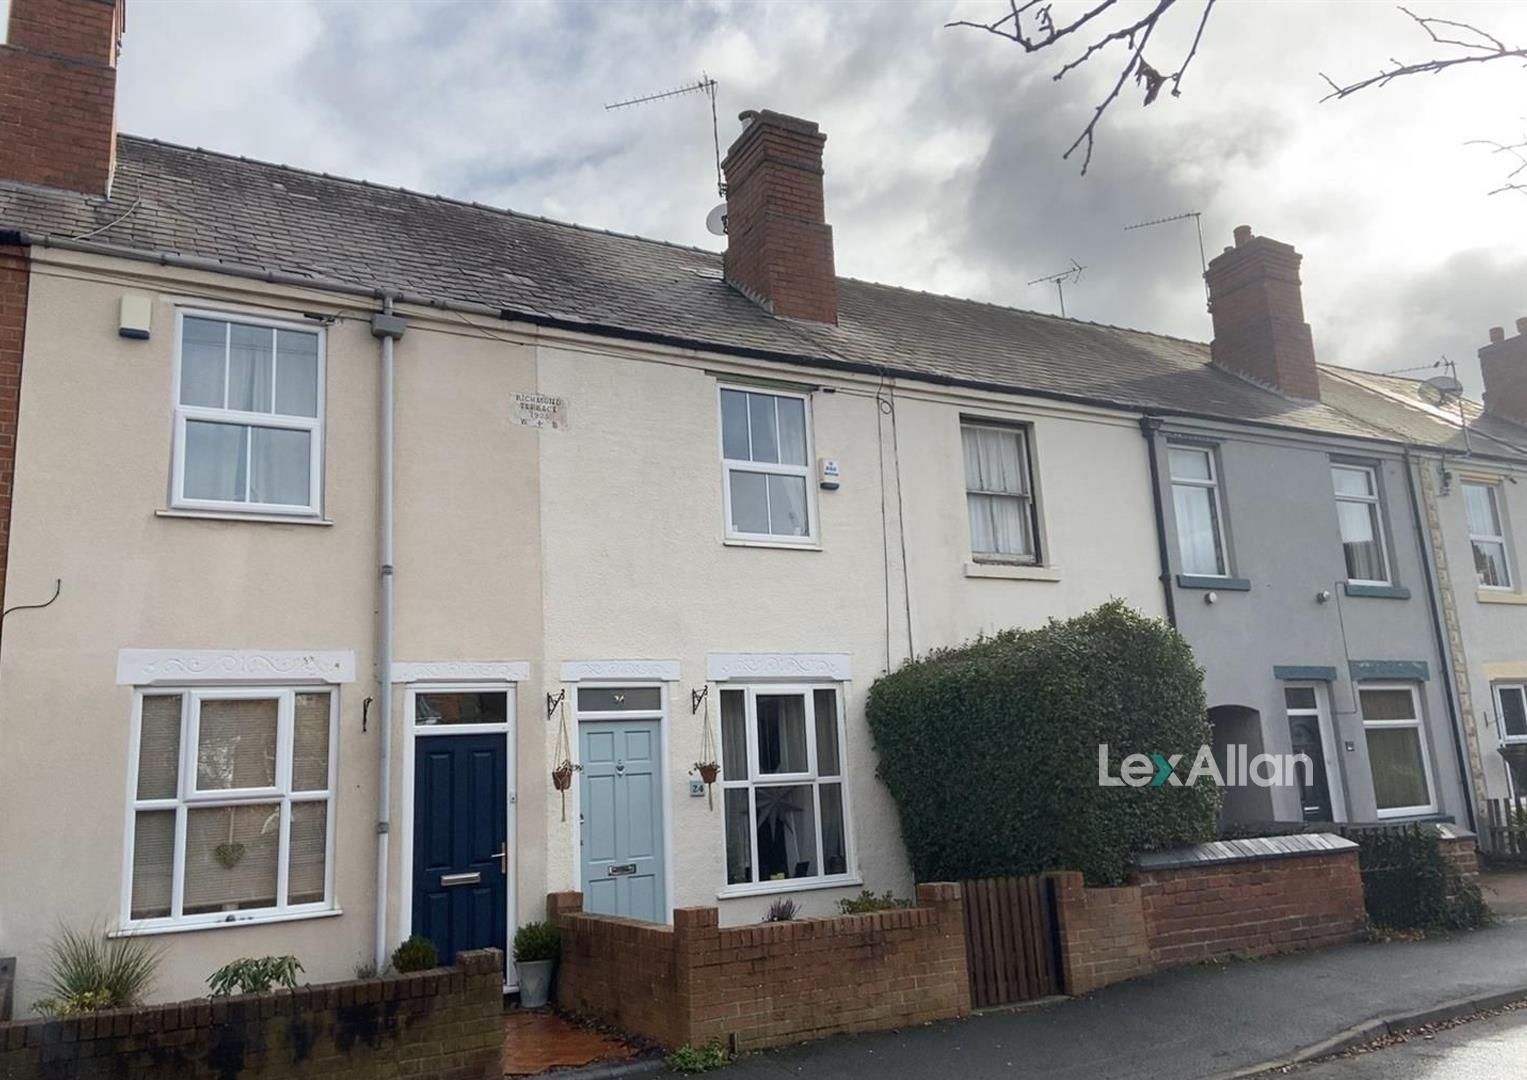 3 bed terraced for sale in Wollaston 1